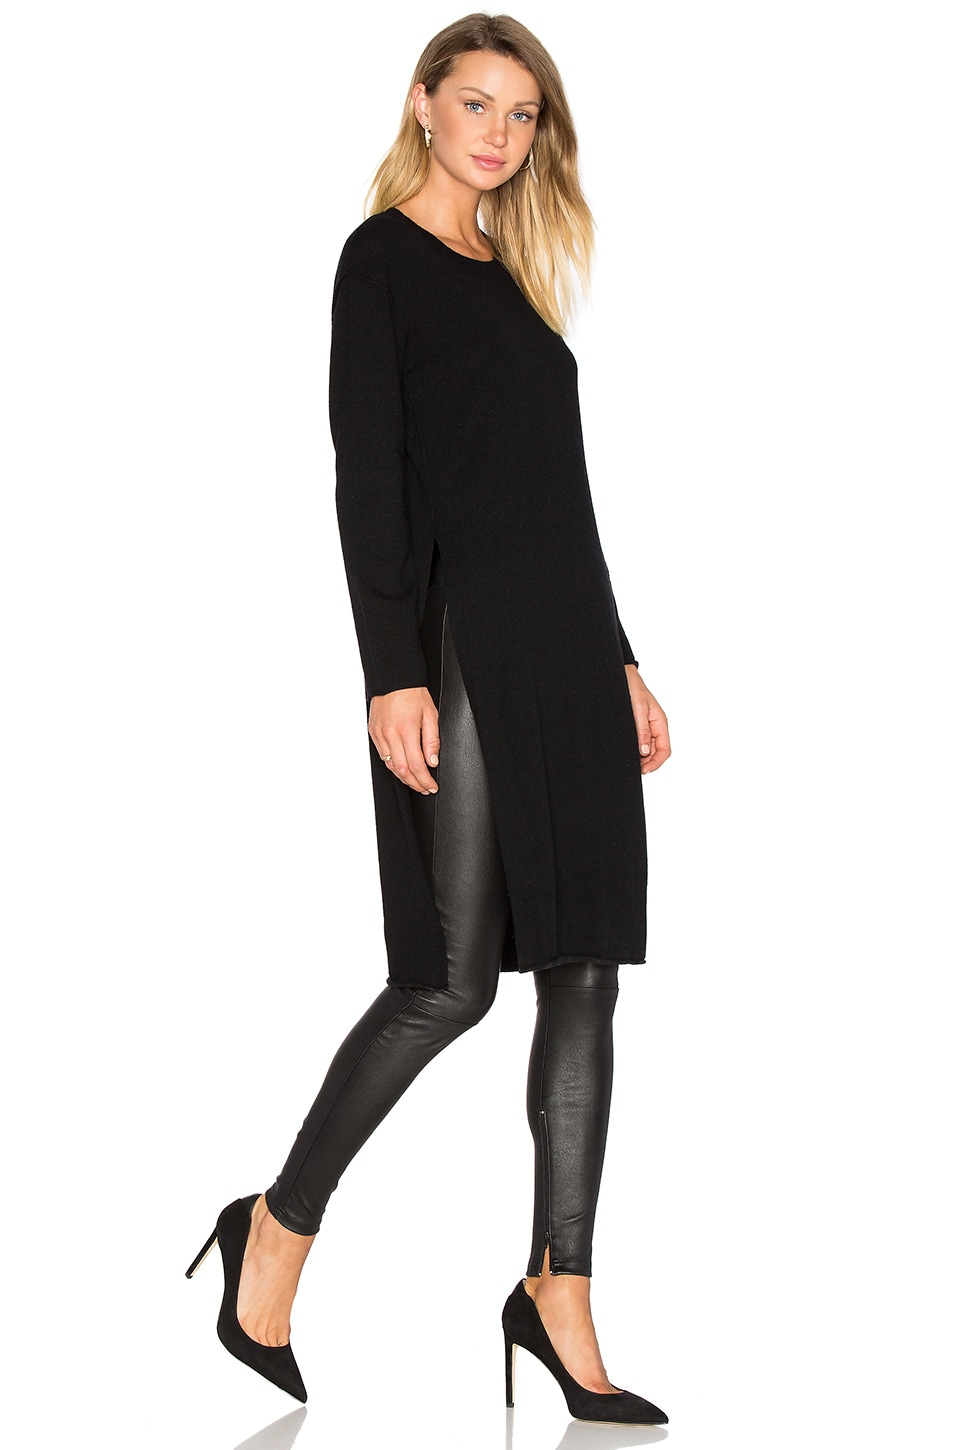 Knox Side Slit Sweater by Line